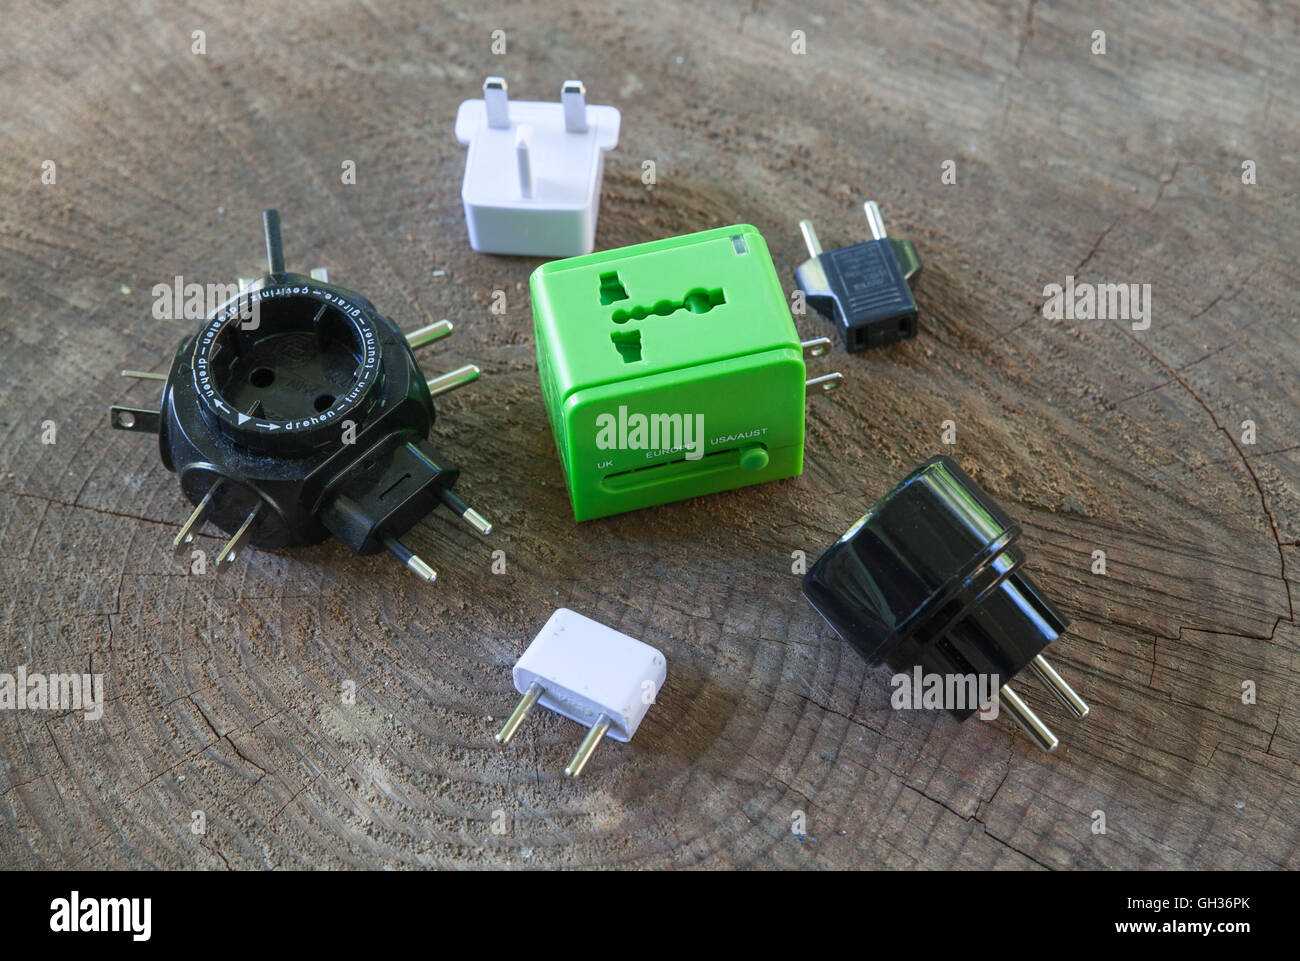 A traveler's collection of international adapter plugs - Stock Image